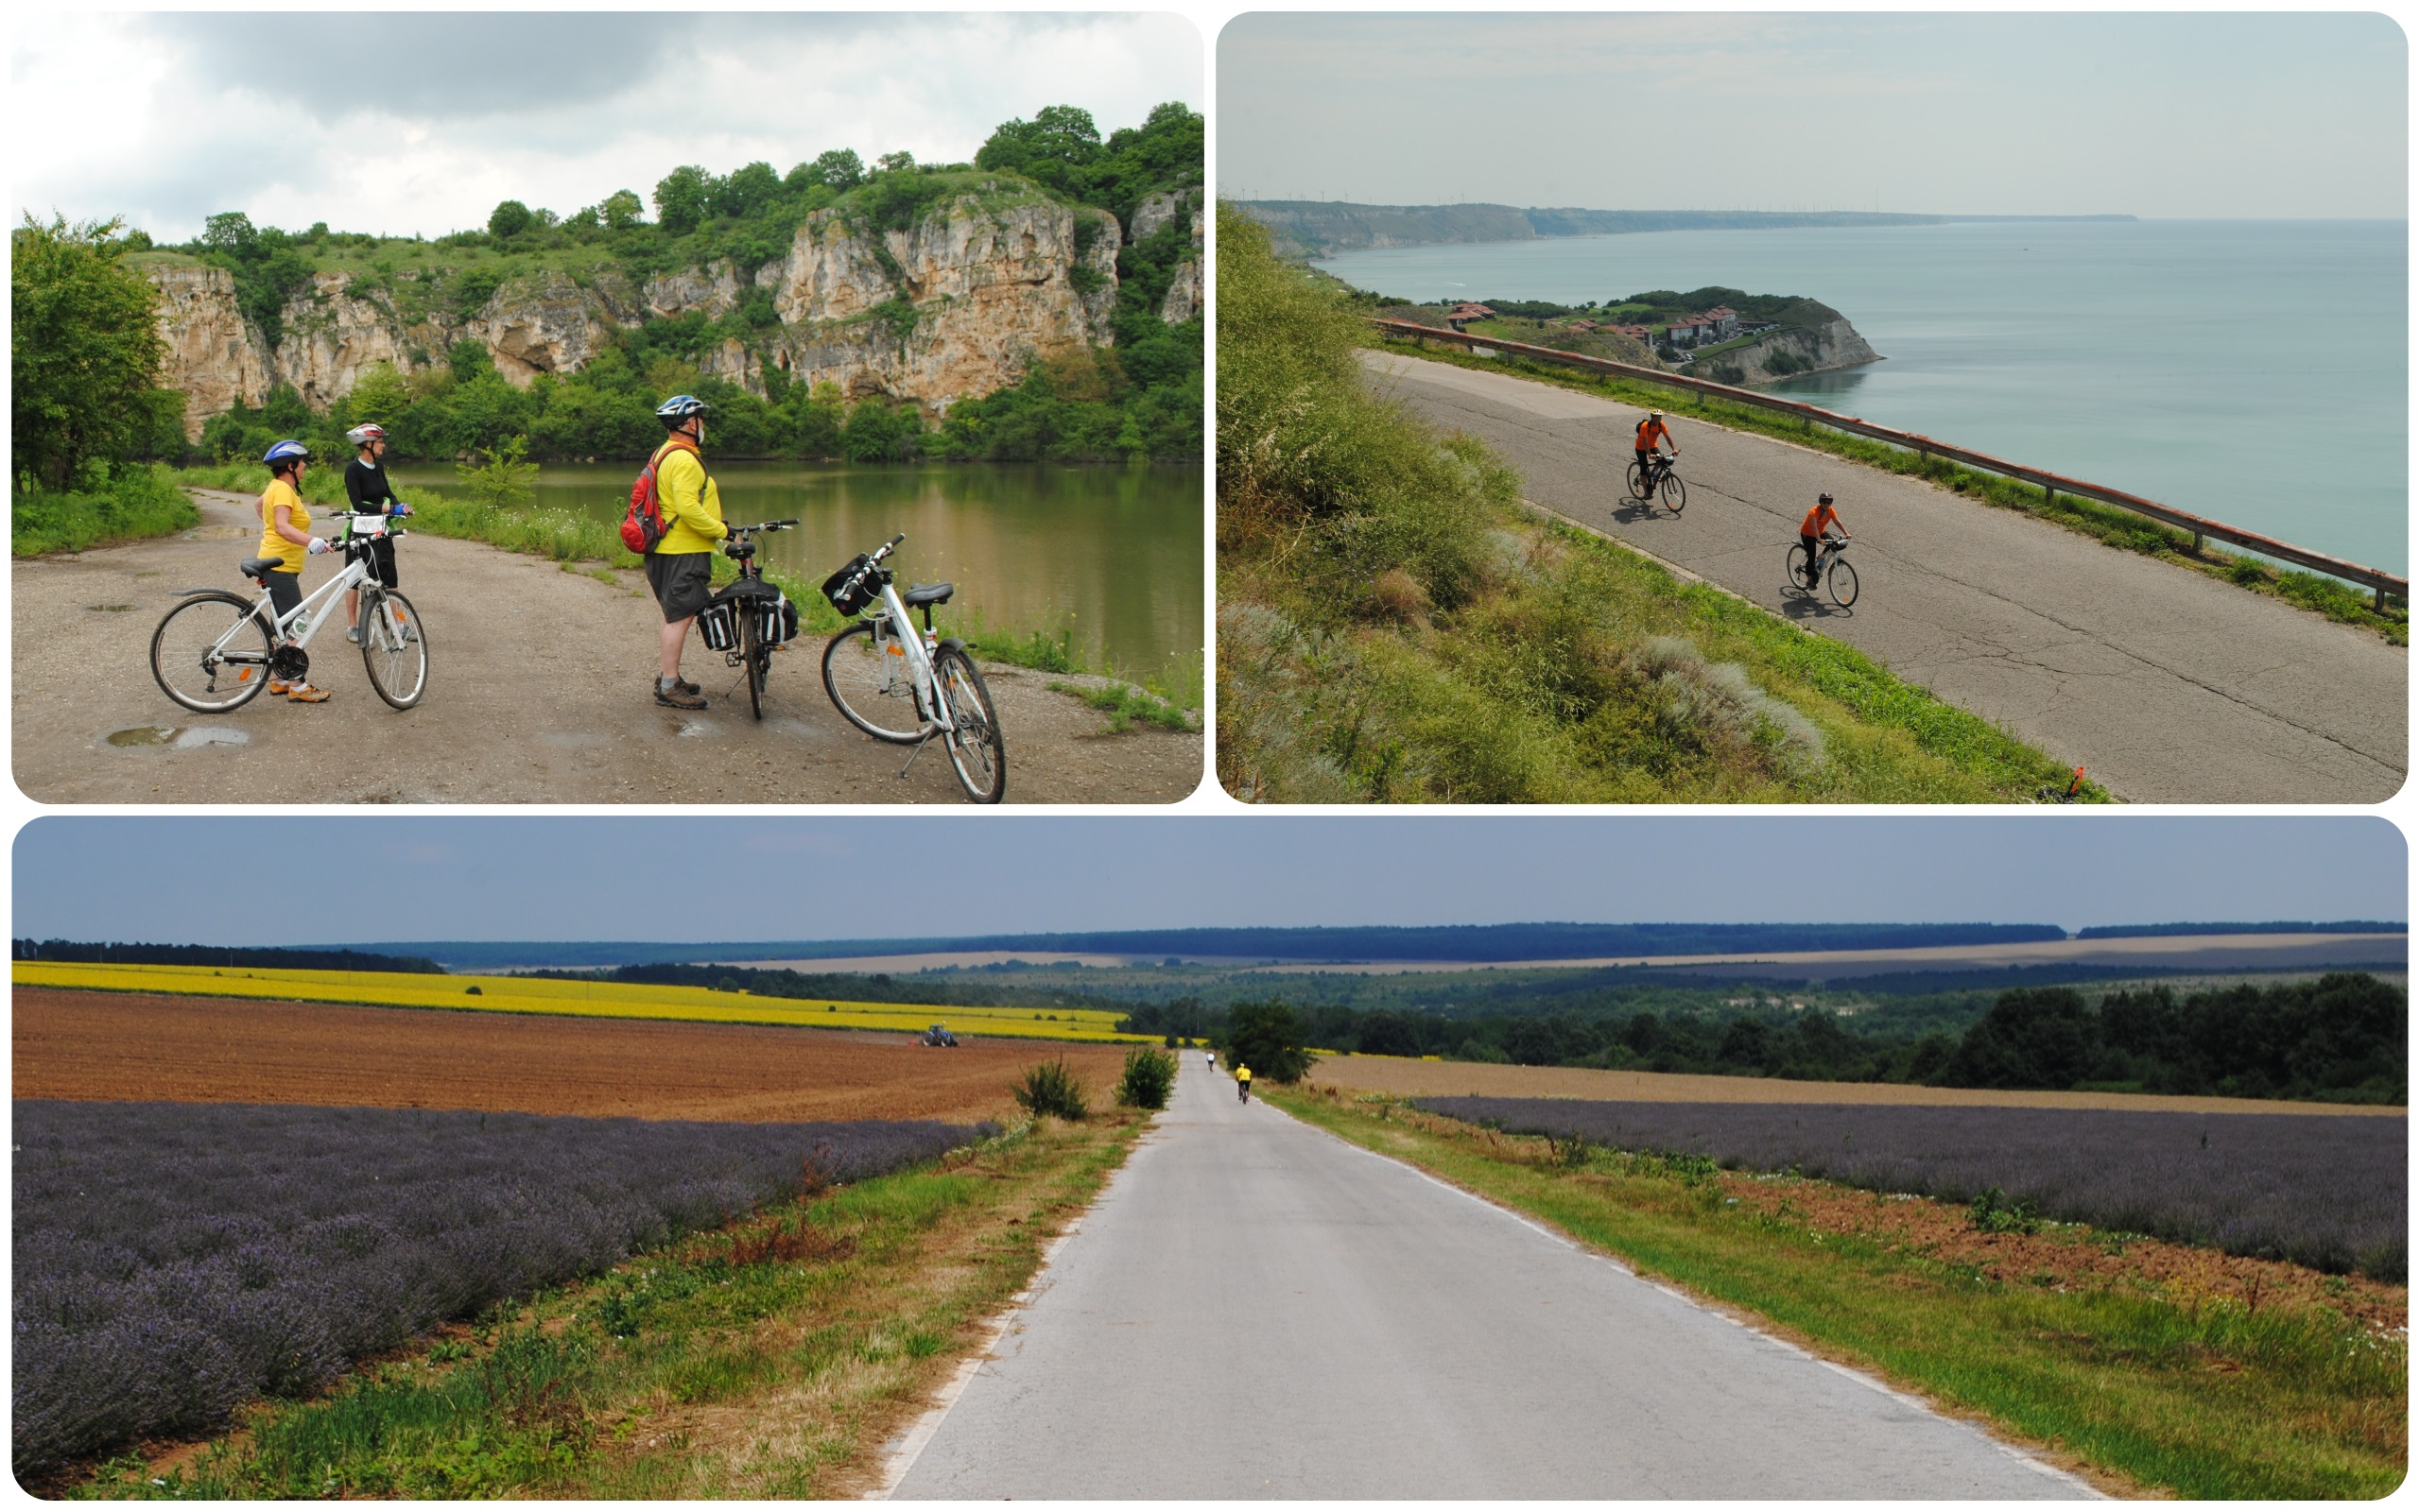 Guided bicycle tours in Romania and Bulgaria - fully supported and well organized, multi day bike rides